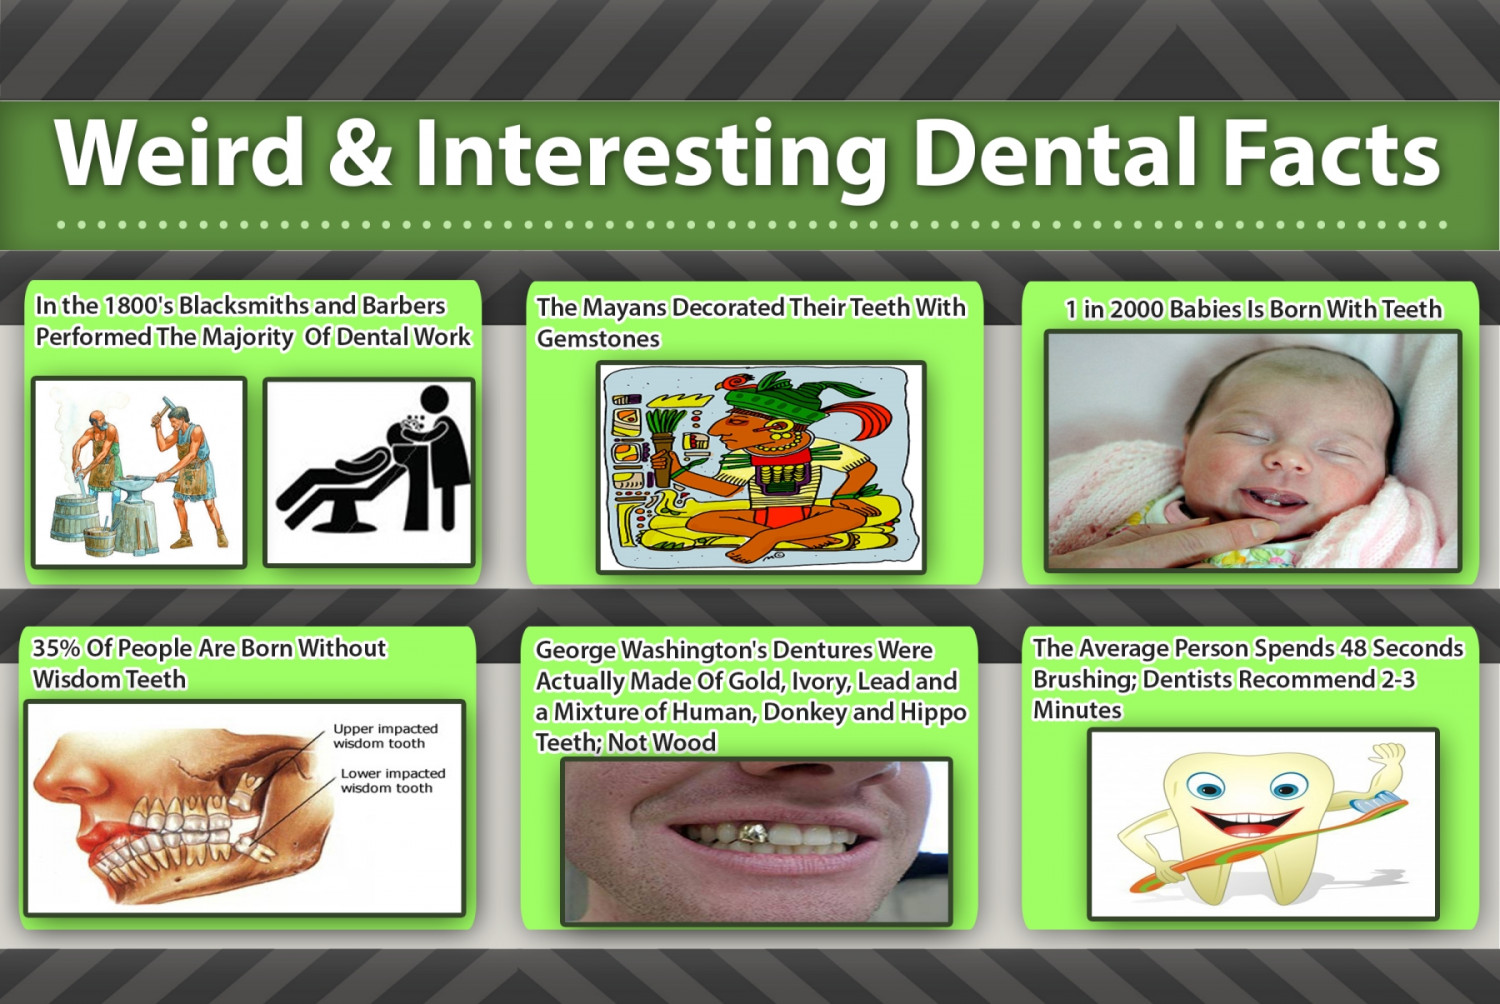 Weird & Interesting Dental Facts Infographic